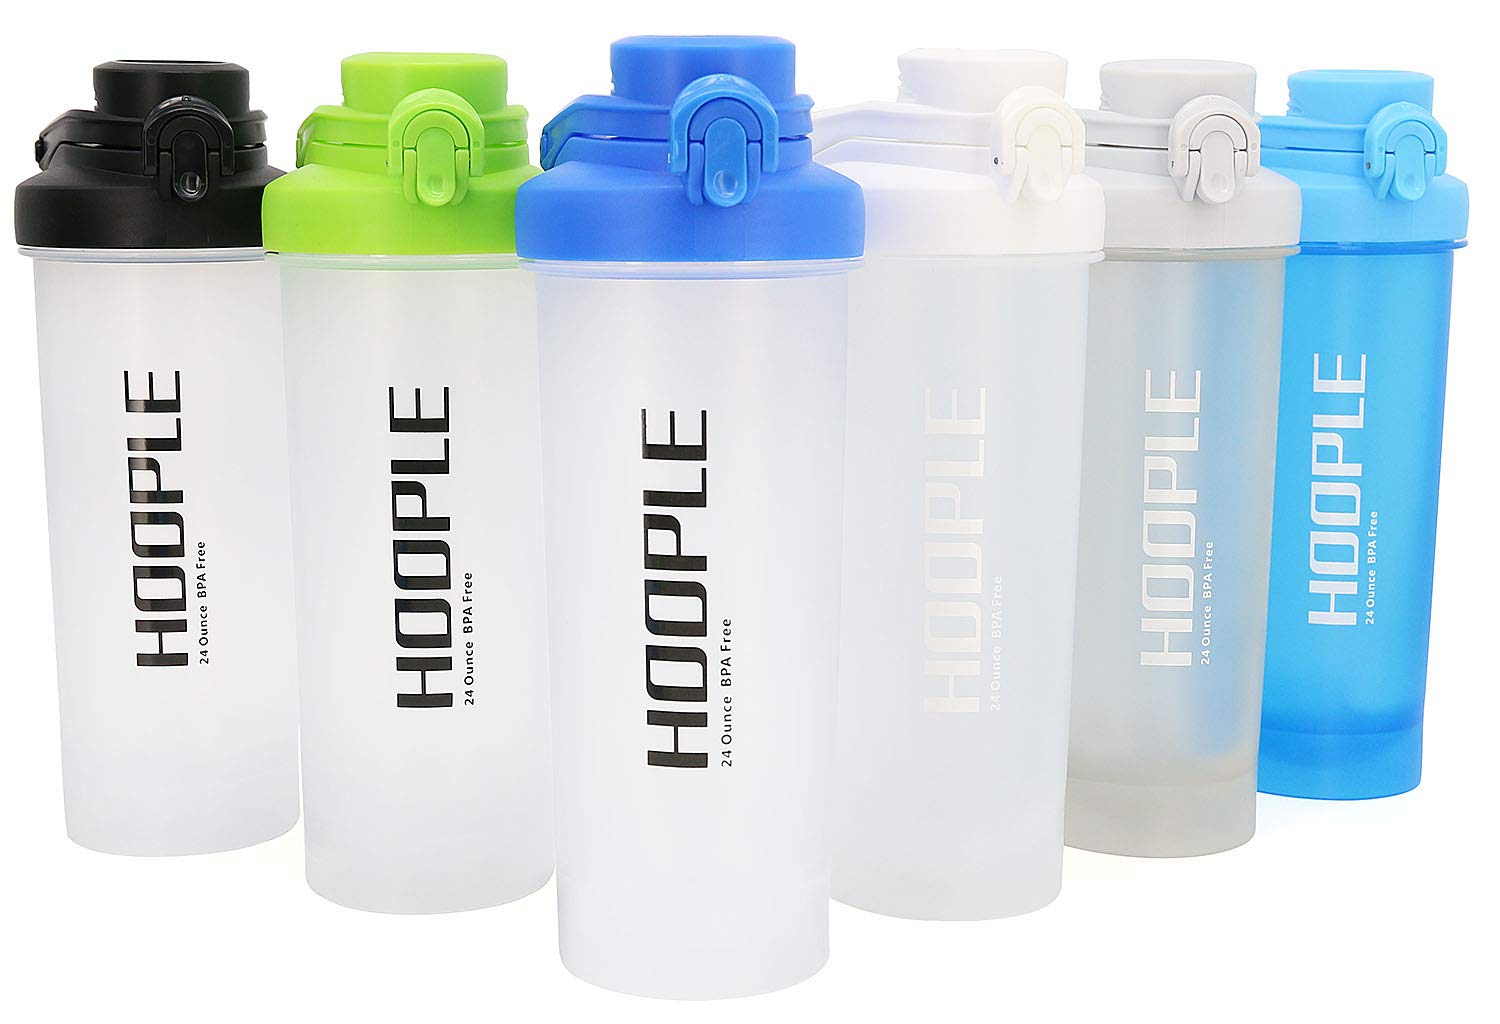 HOOPLE Protein Shaker Bottle, Gym Sports Water Bottle, Smoothie Mixer Cups, BPA Free, Flip Lid with Powerful Blending Ball Included, 24-Ounce (Random Color 4 Pack)